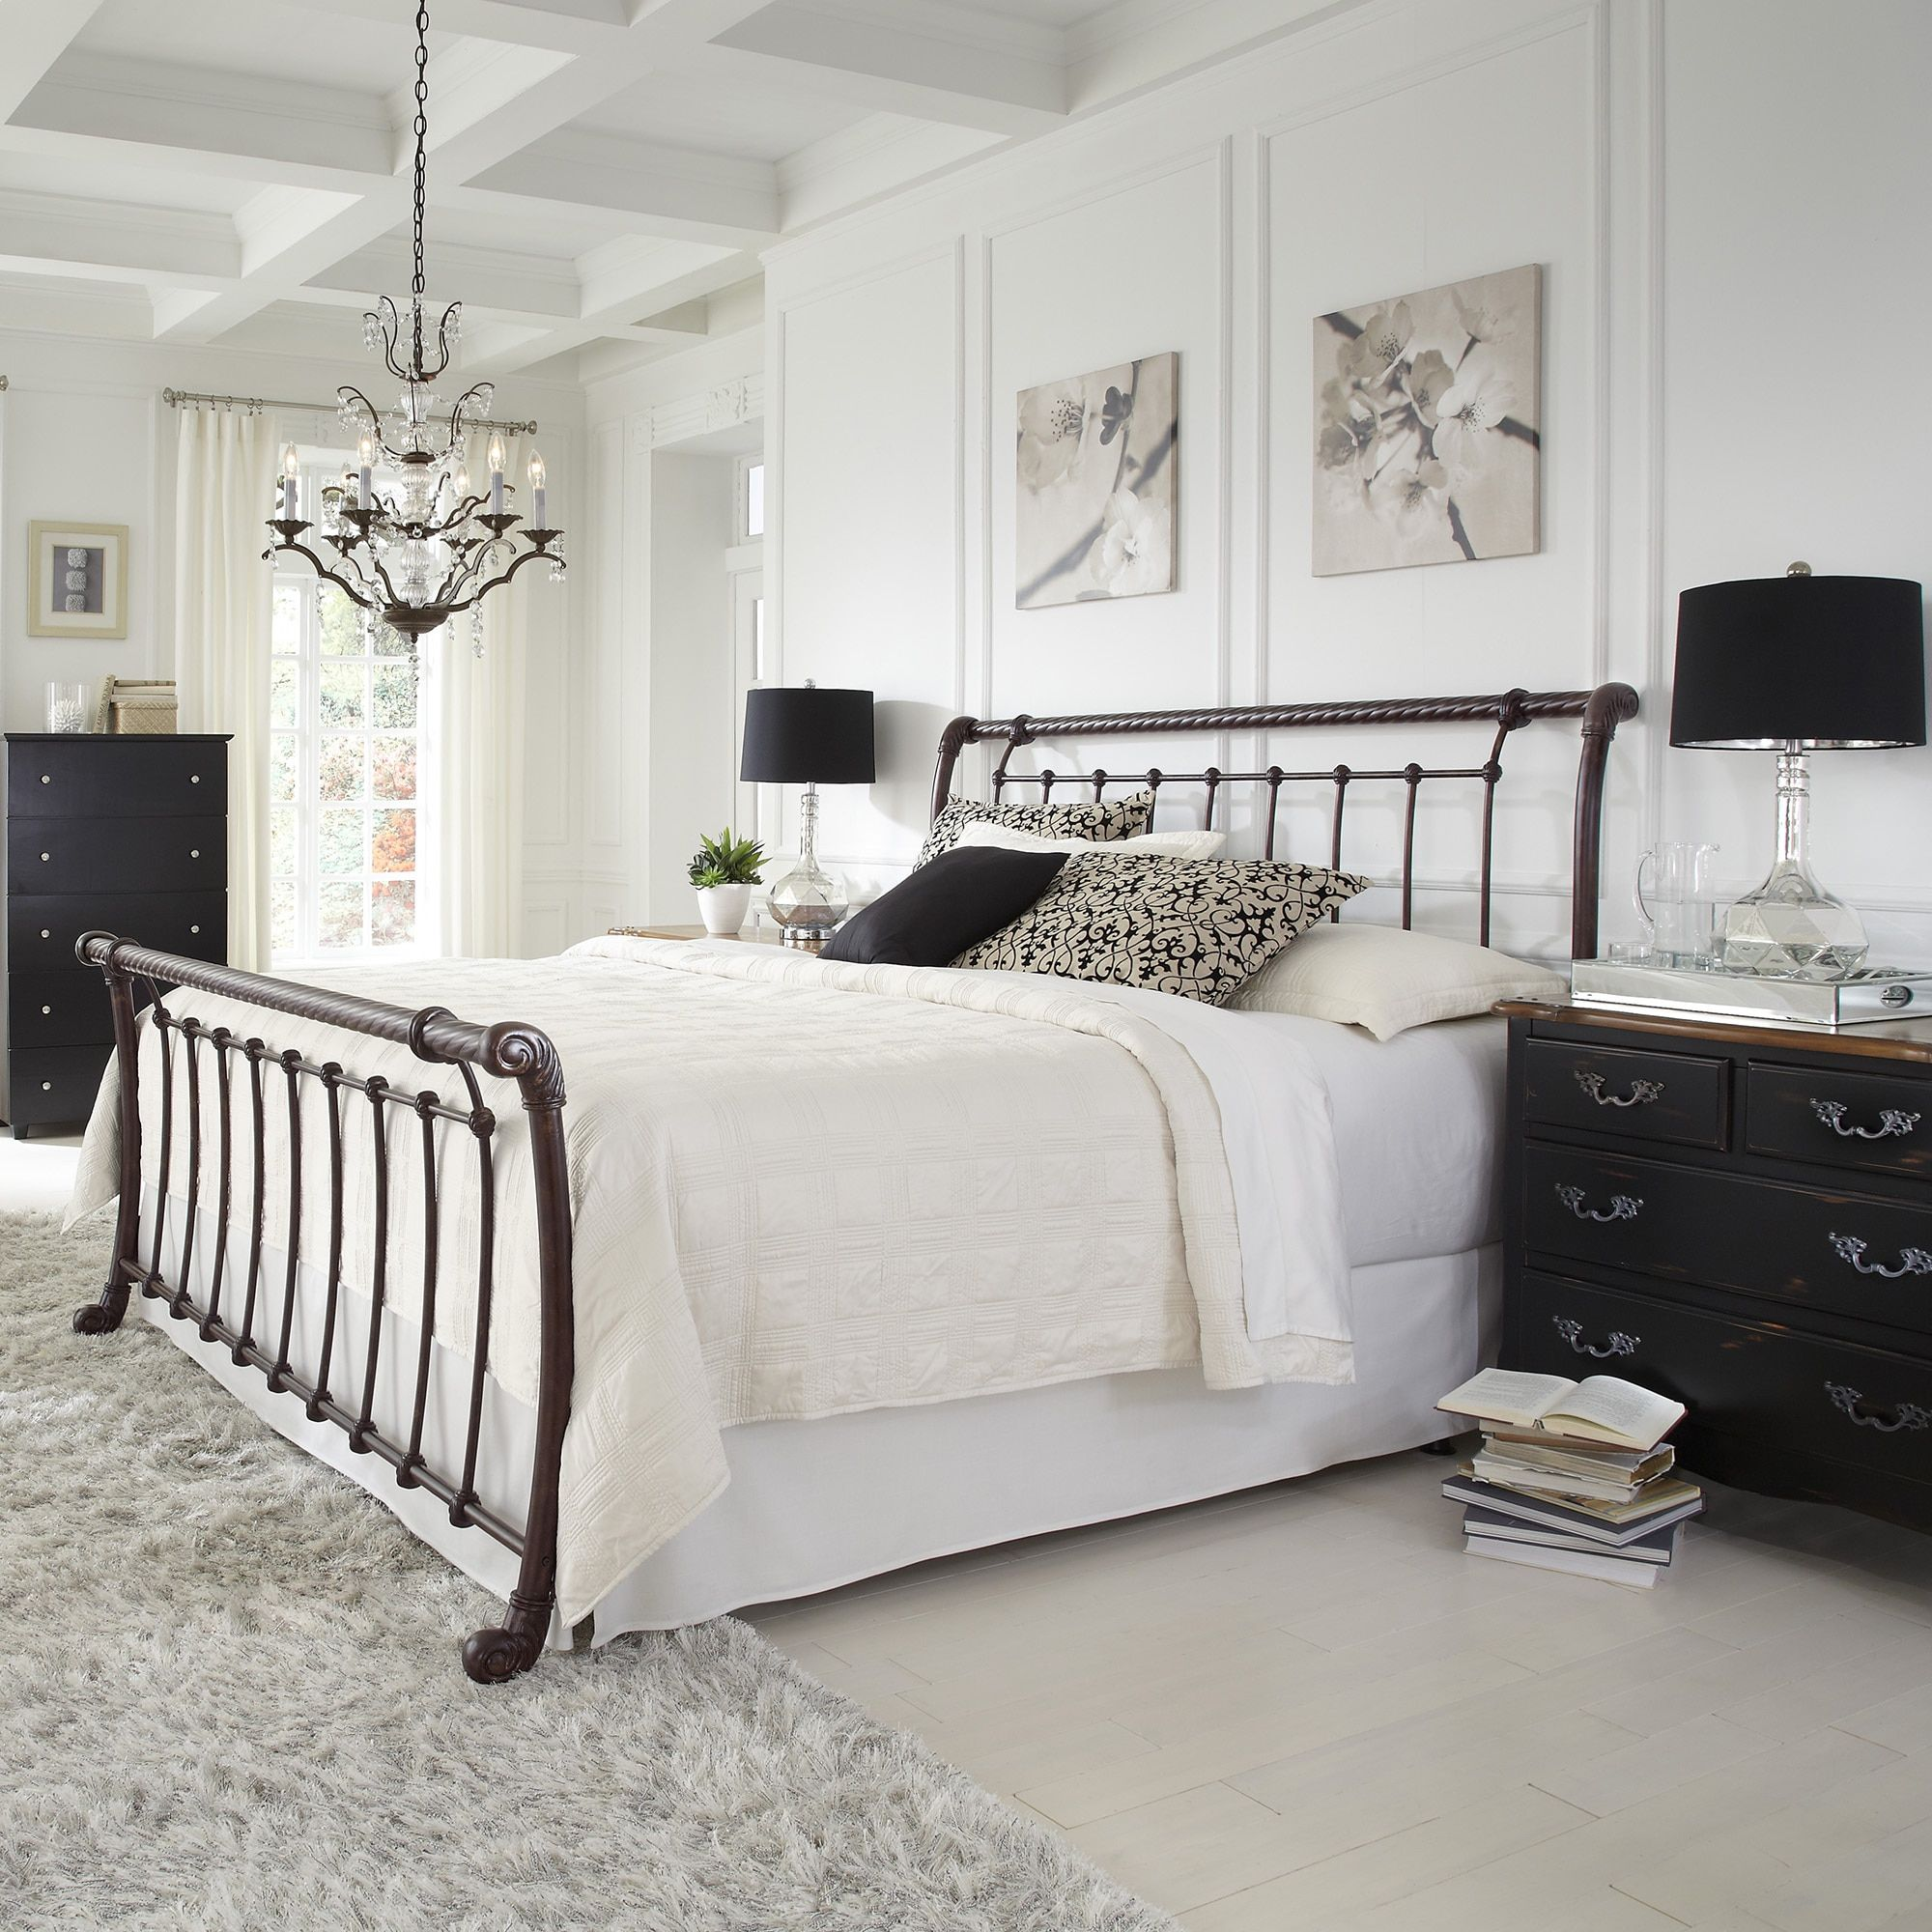 Free Shipping Furniture Stores: King Bed Home Goods: Free Shipping On Orders Over $45 At